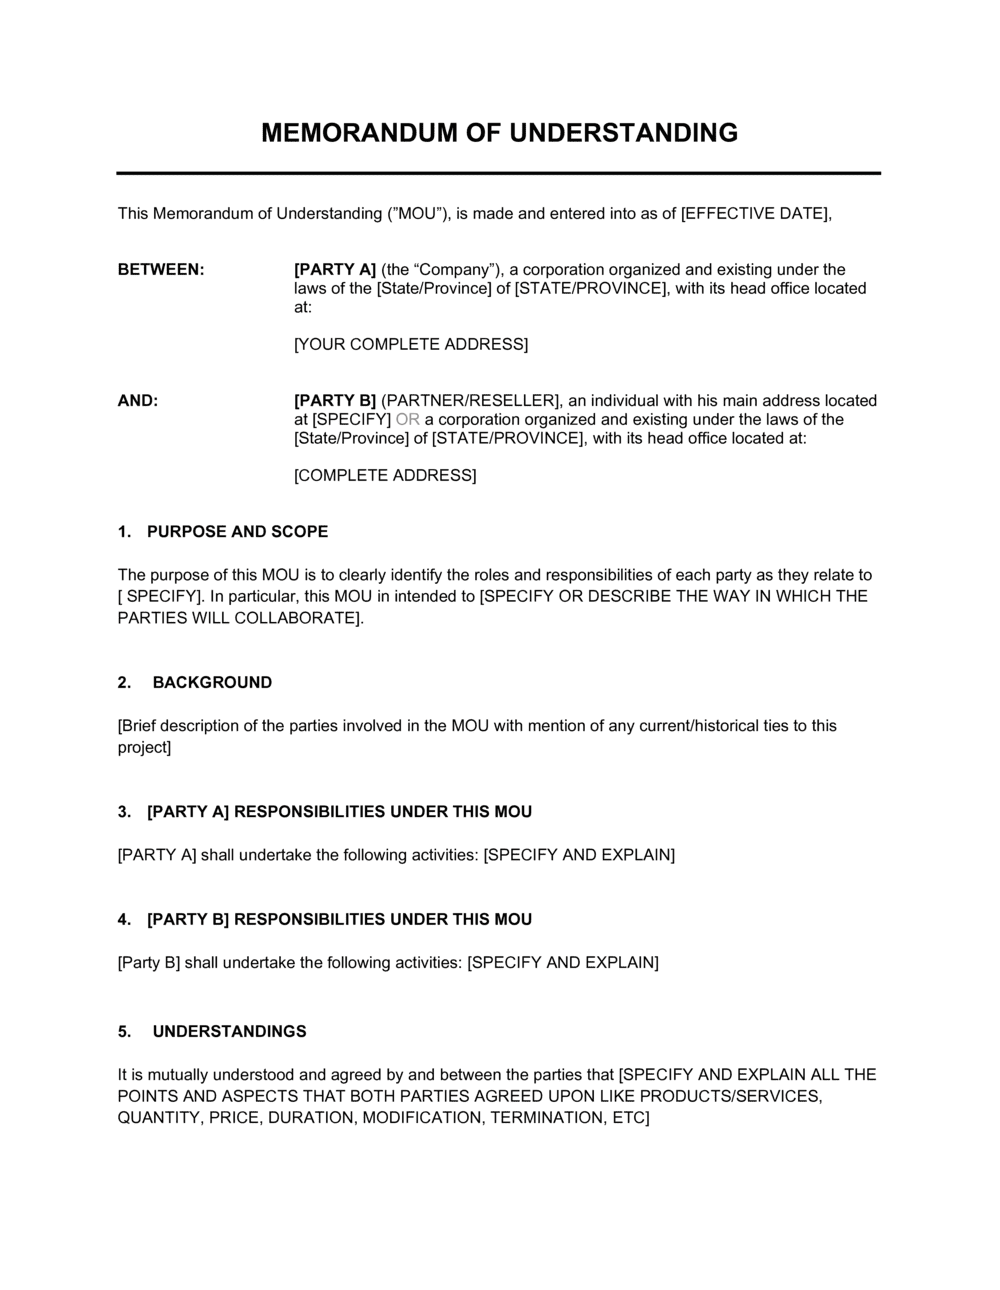 Business-in-a-Box's Memorandum of Understanding Template